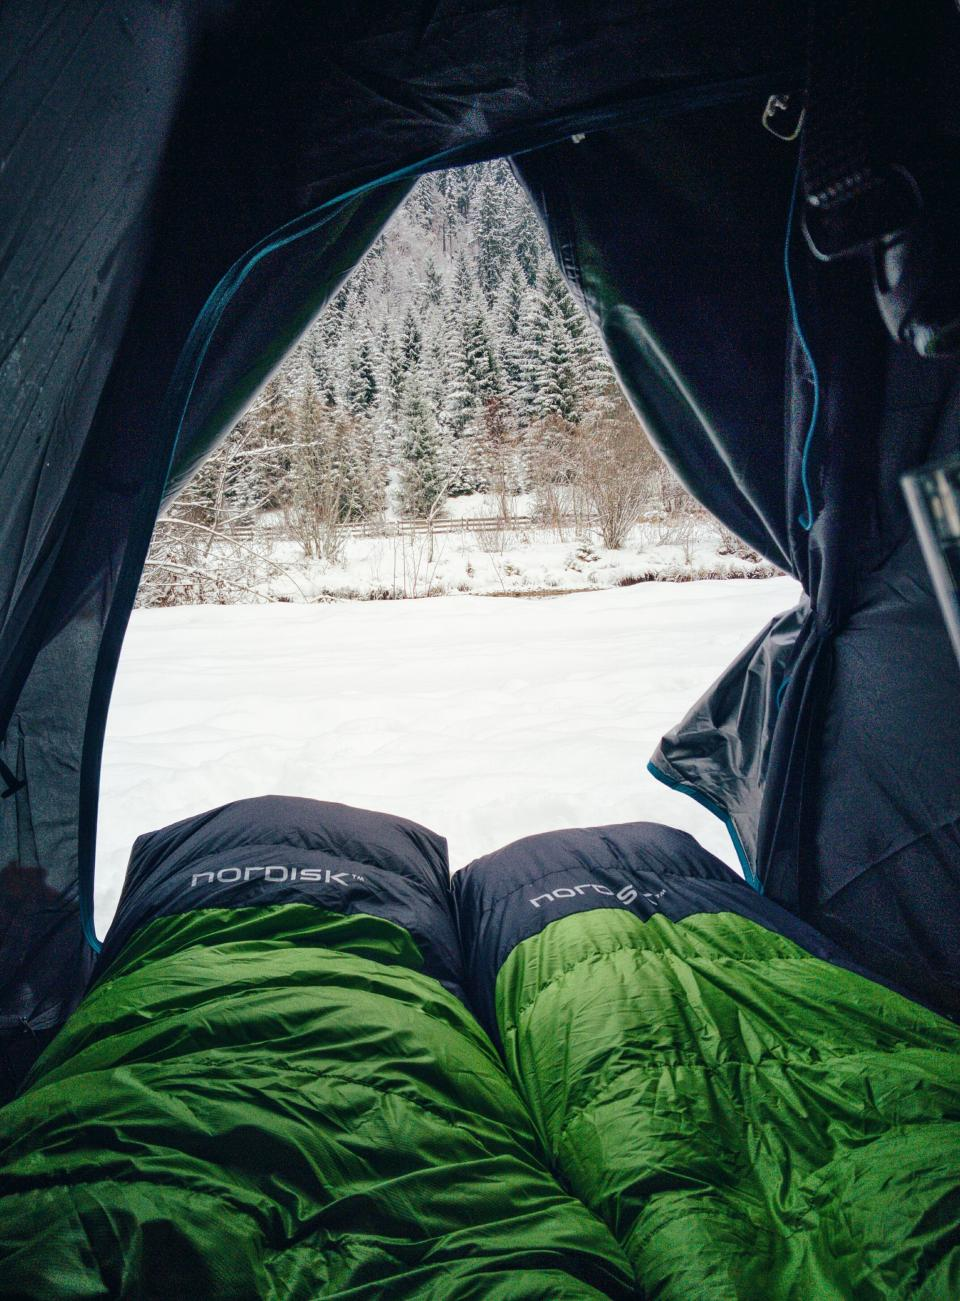 green, sleeping, bag, tent, camping, cold, winter, snow, tree, nature